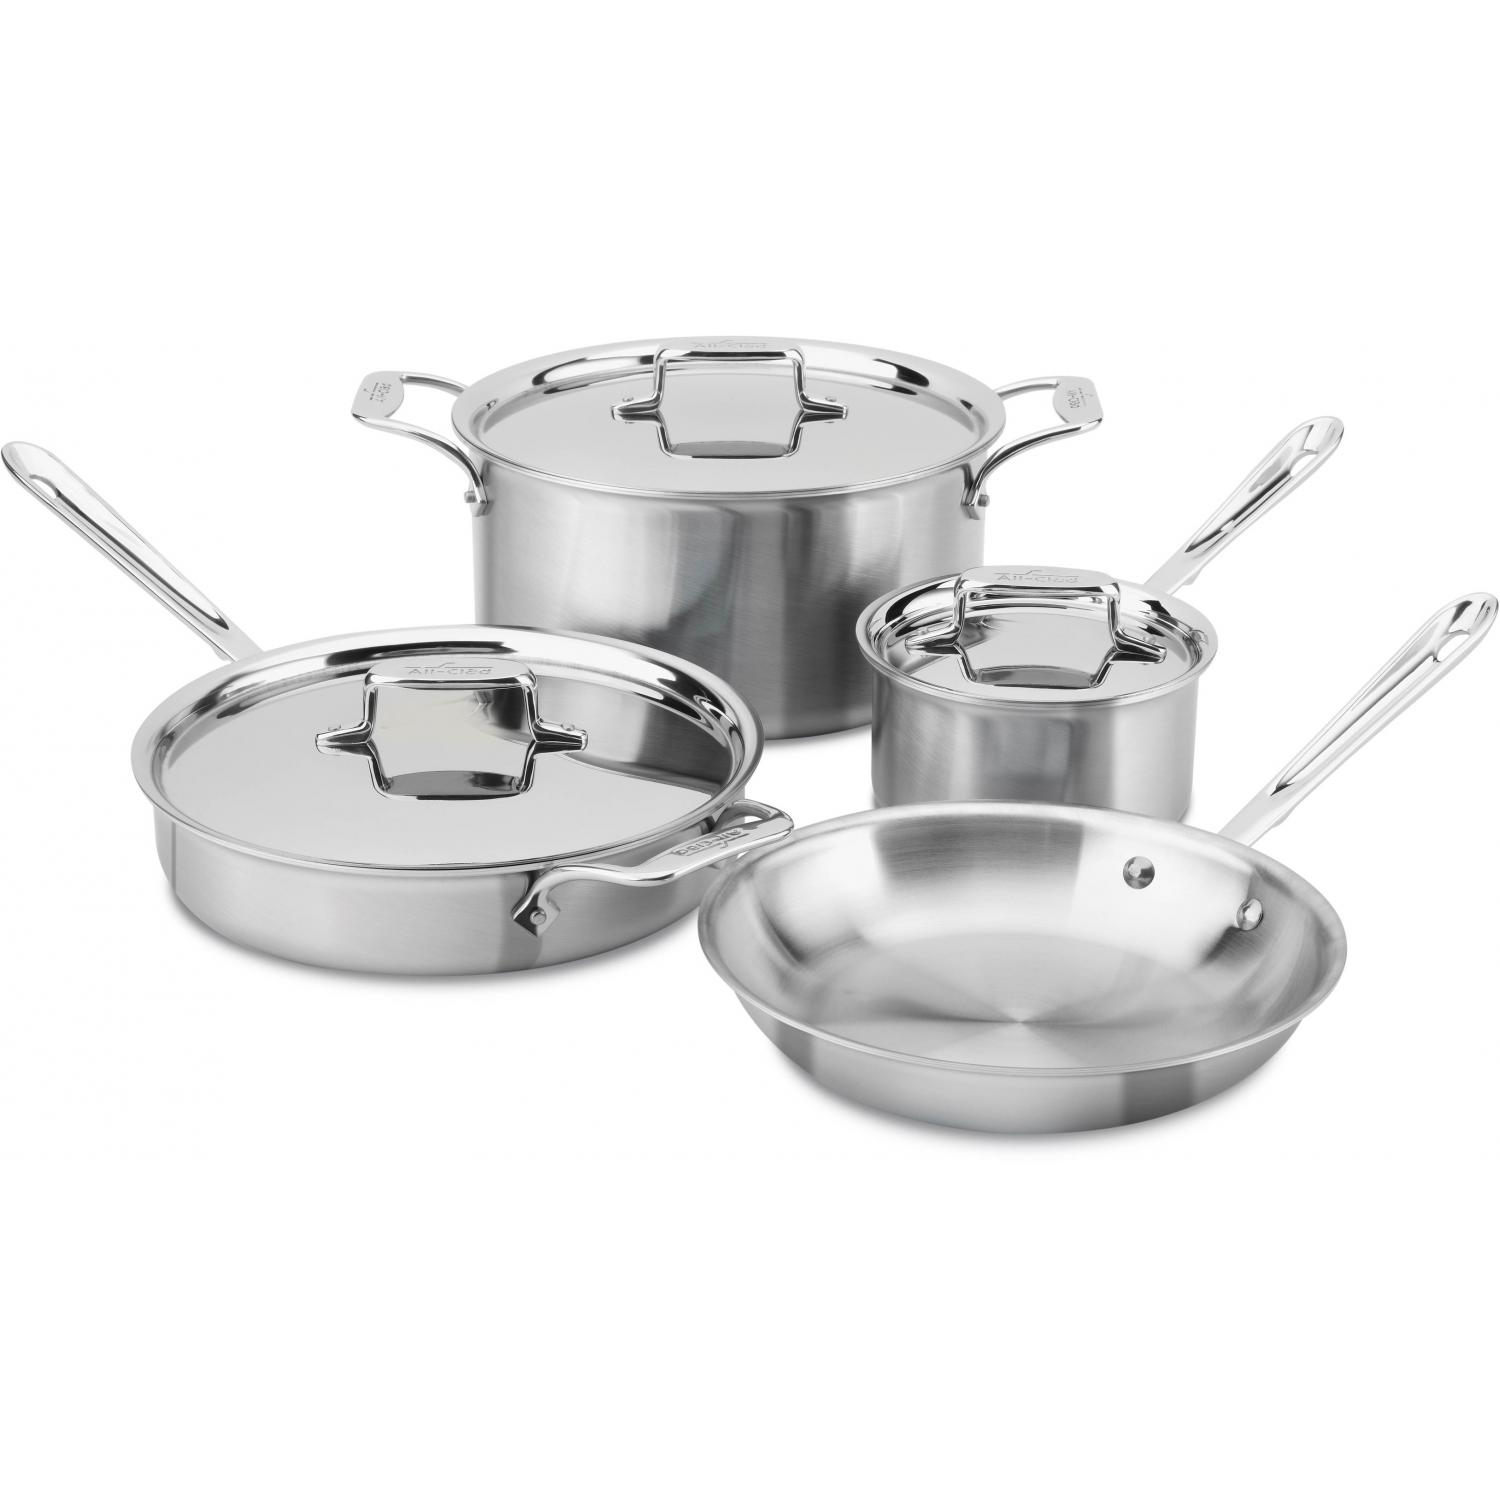 Picture of All-Clad D5 Stainless 7-Piece Cookware Set